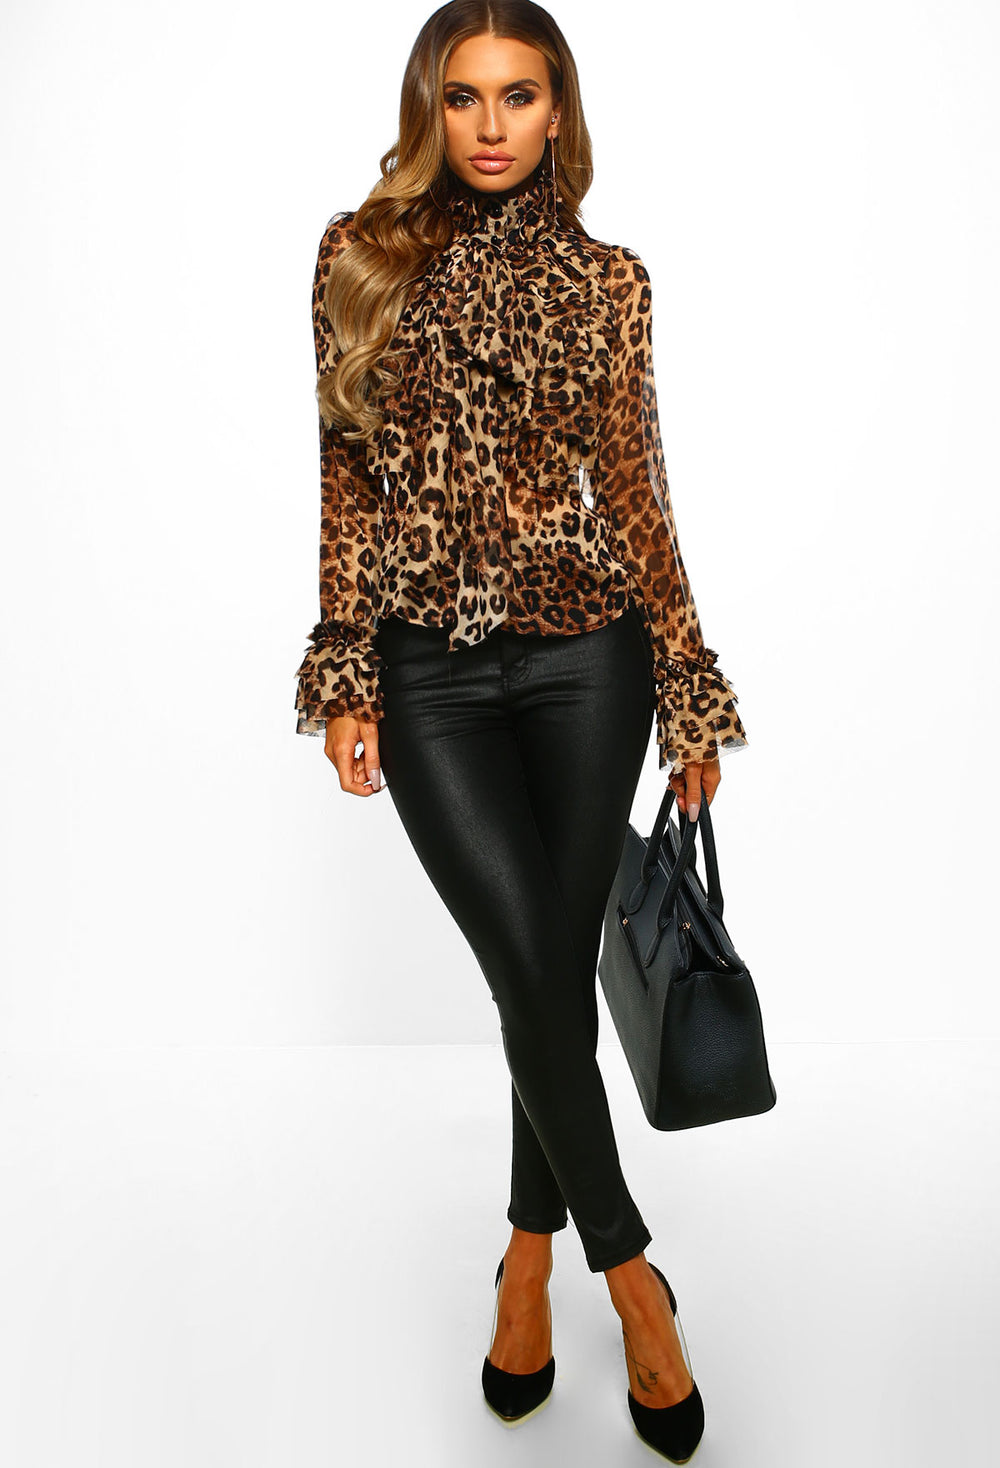 On Show Multi Leopard Print Sheer Pussy Bow Ruffle Blouse